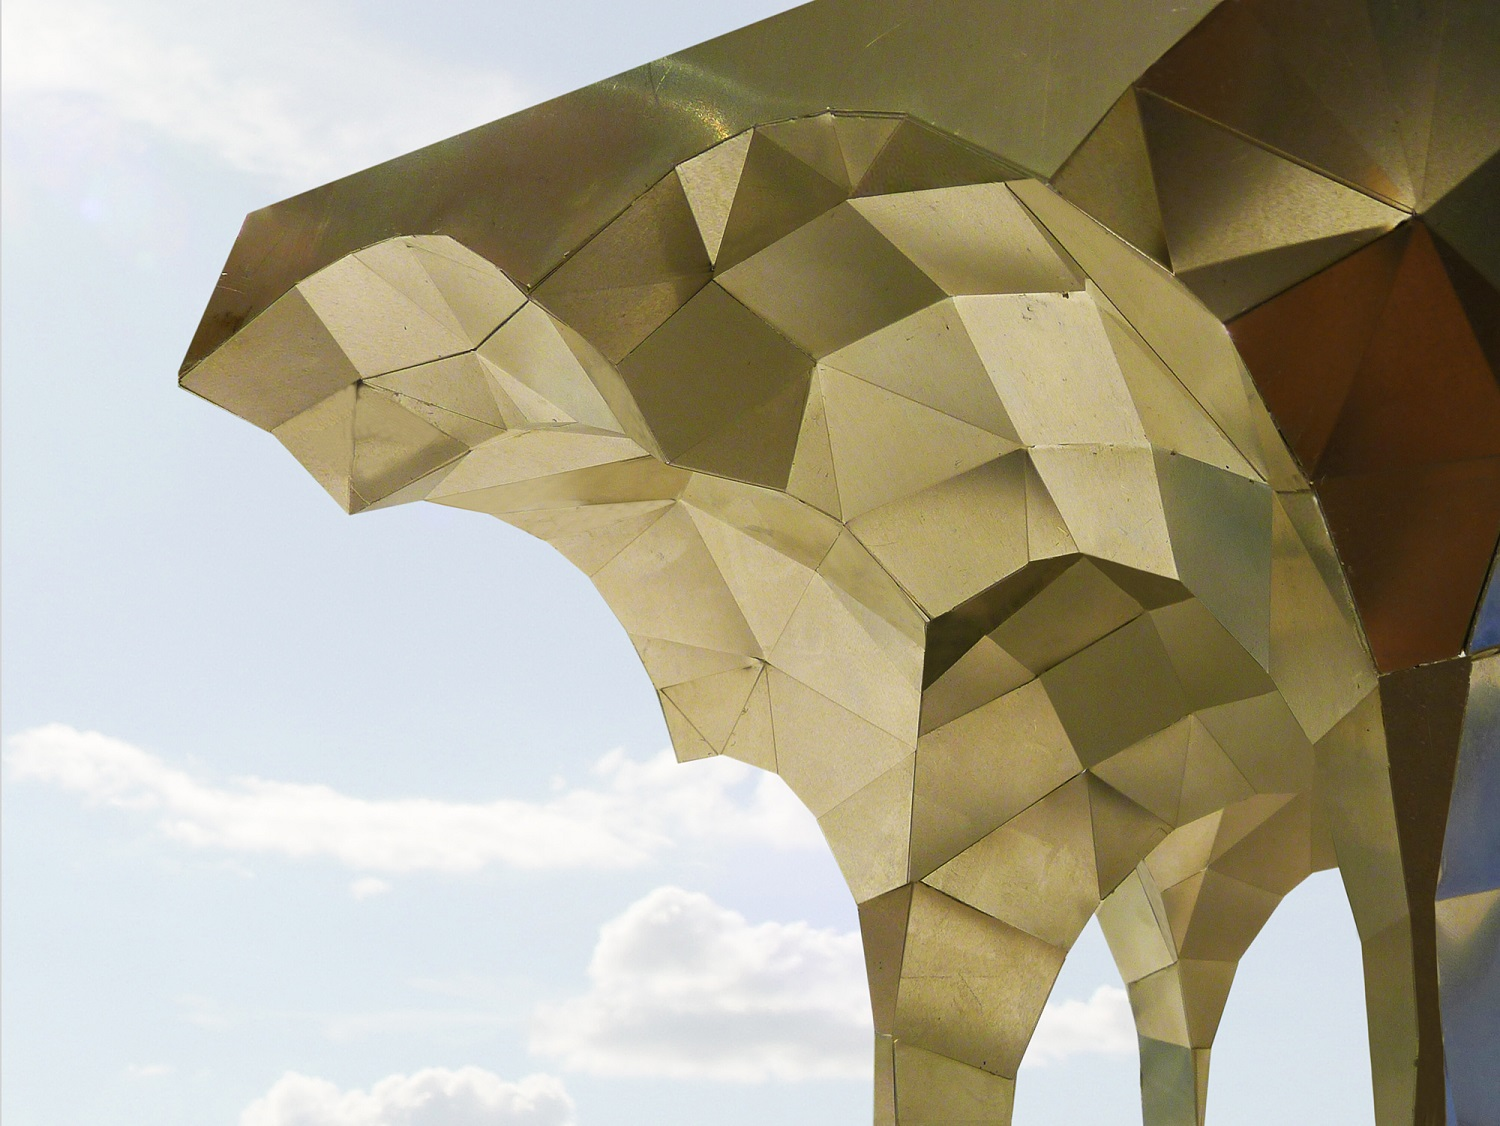 Cubitt-square-kings-cross-competition-canopy-London-Central-Limited-Partnership-design-invitation-Jamie-Fobert-architects-3